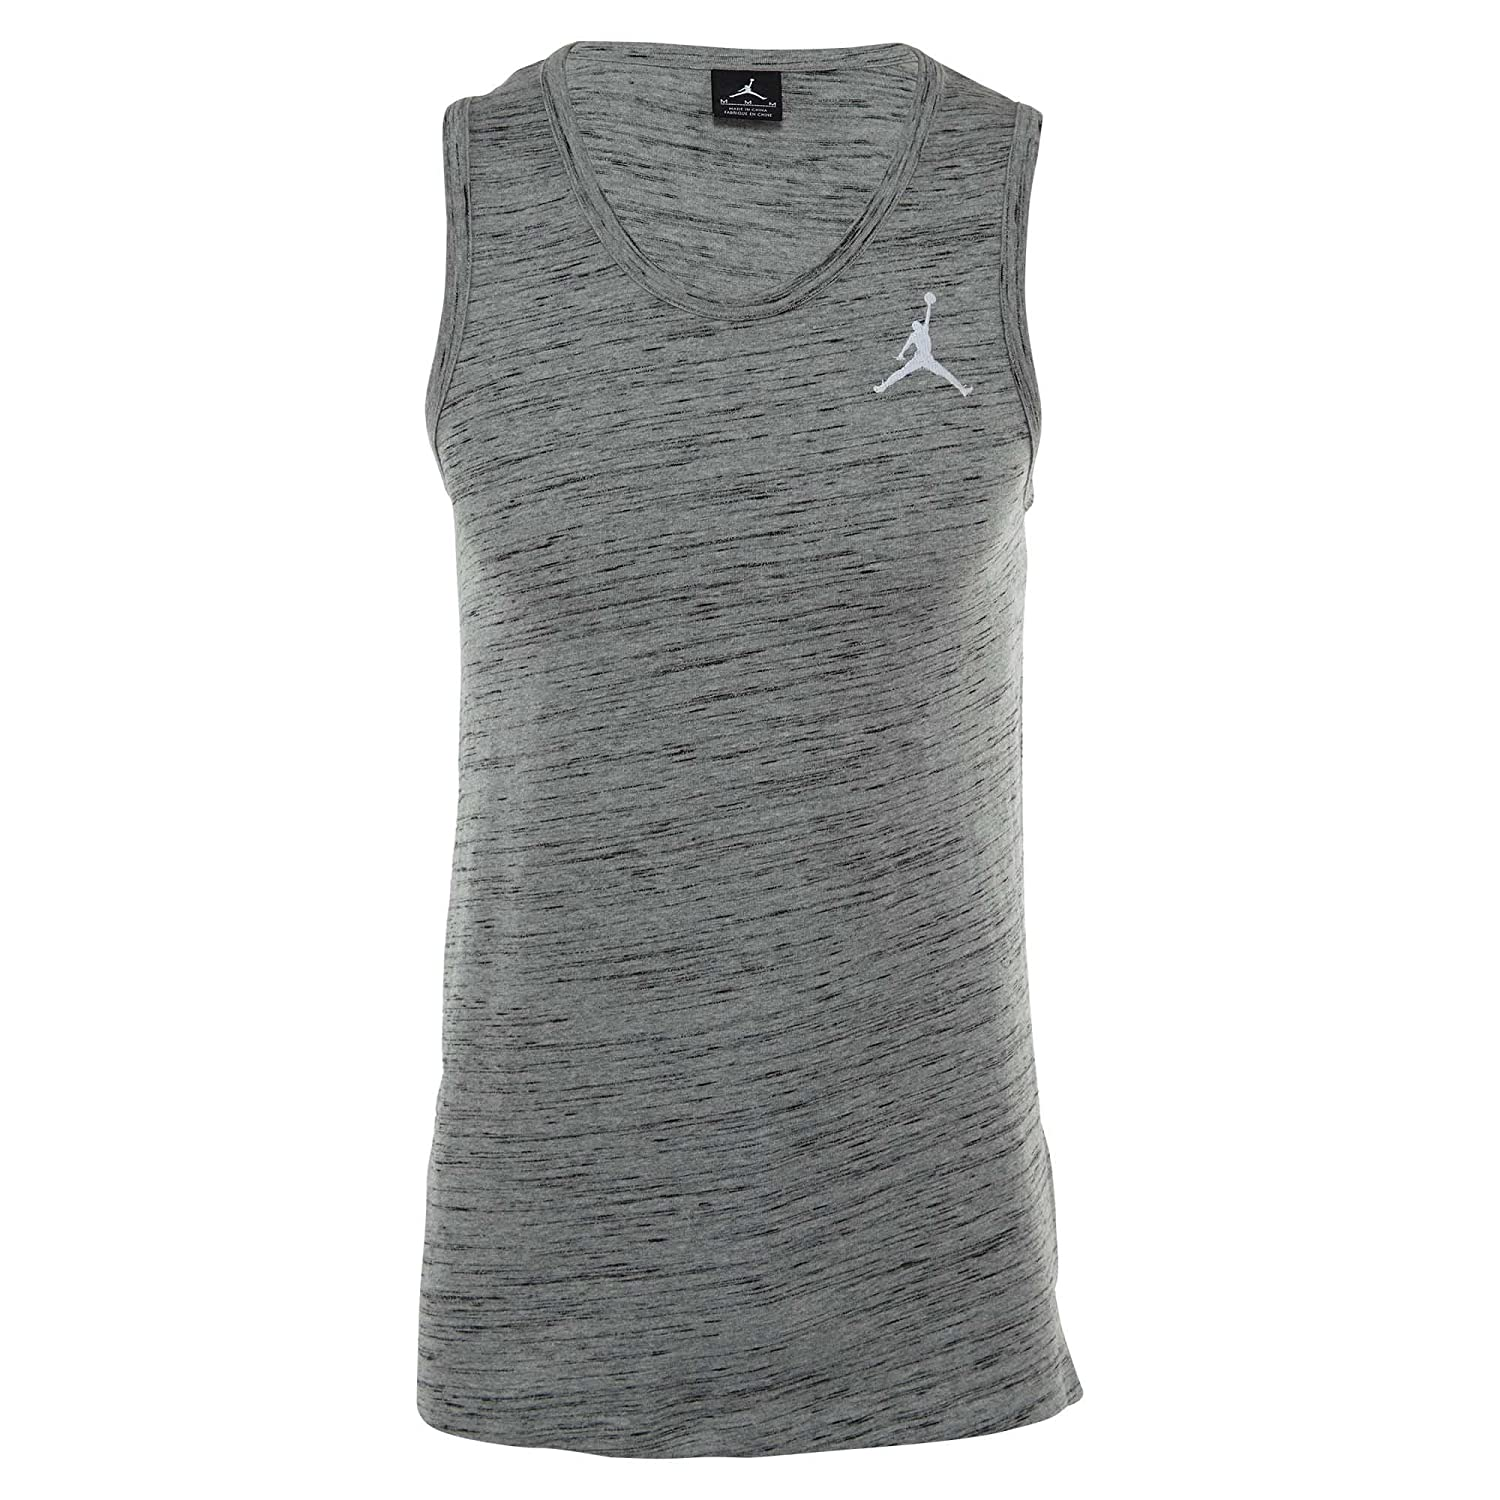 2fa93a1f9 Amazon.com: Jordan All Star Tank Top Heather Grey: Clothing